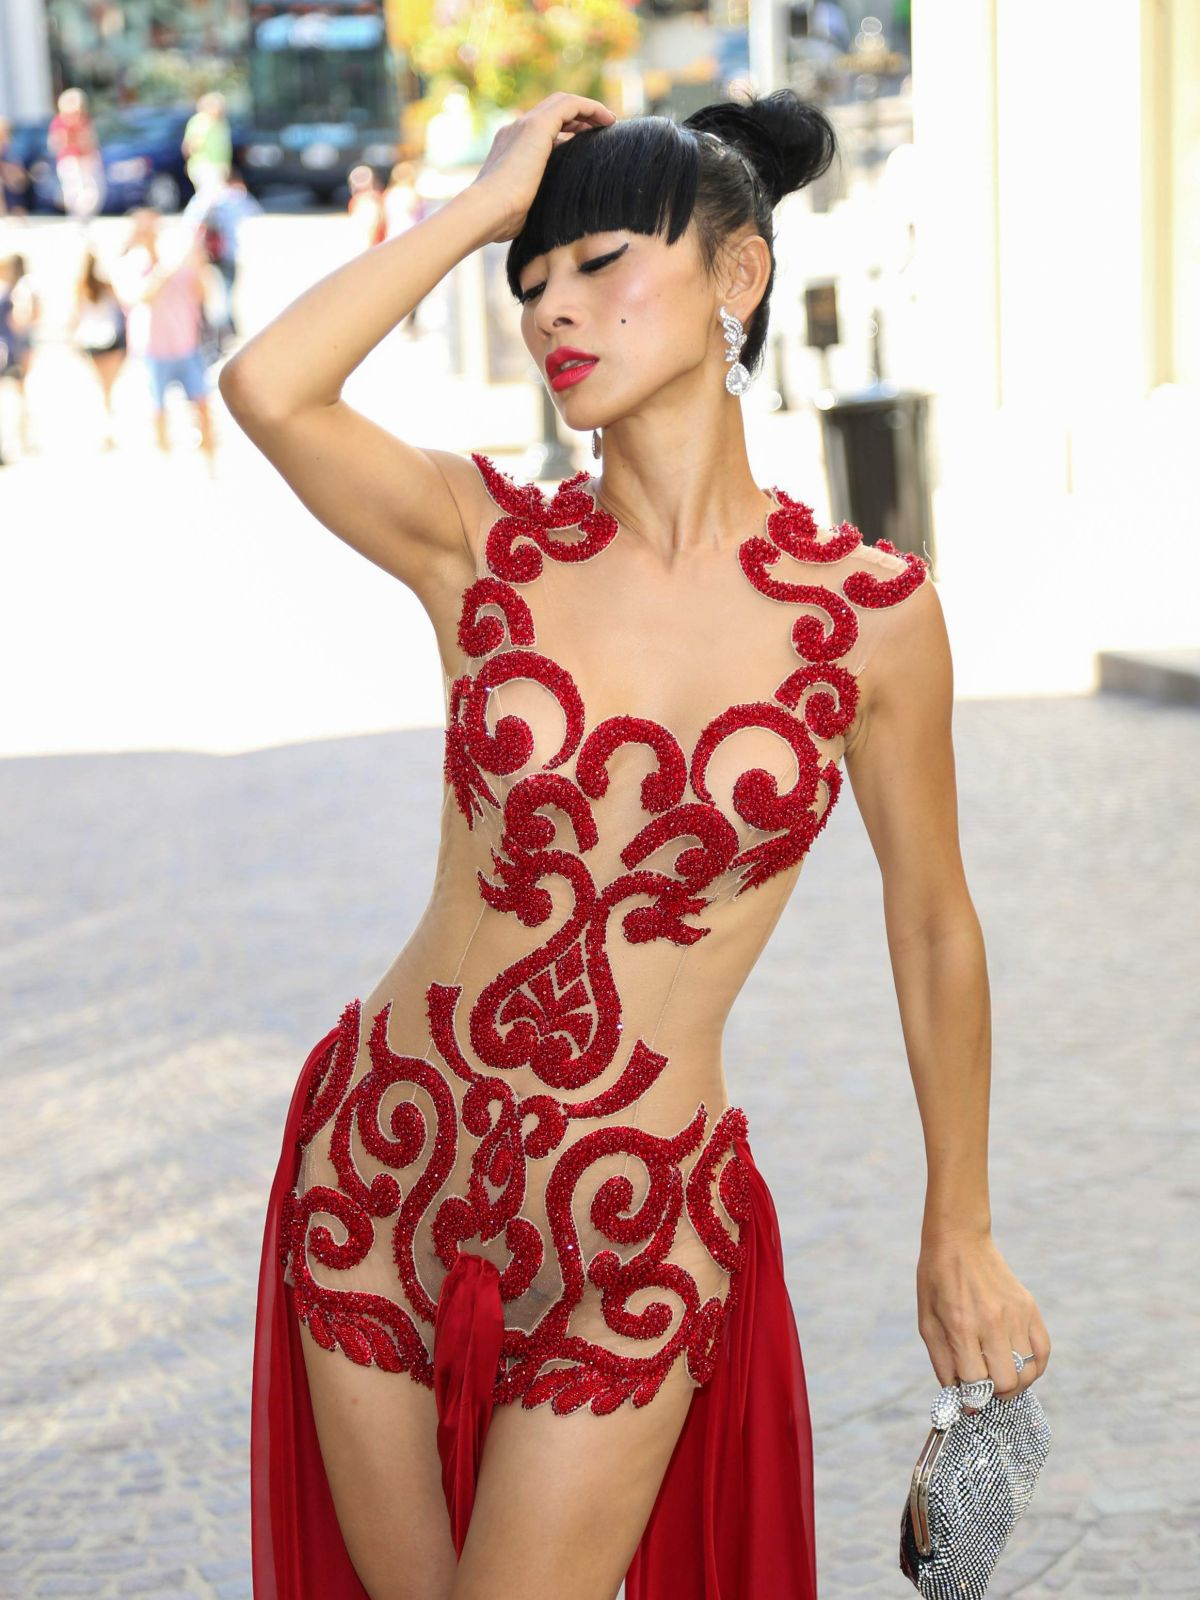 Bai Ling Archives - Page 2 of 5 - Celebzz